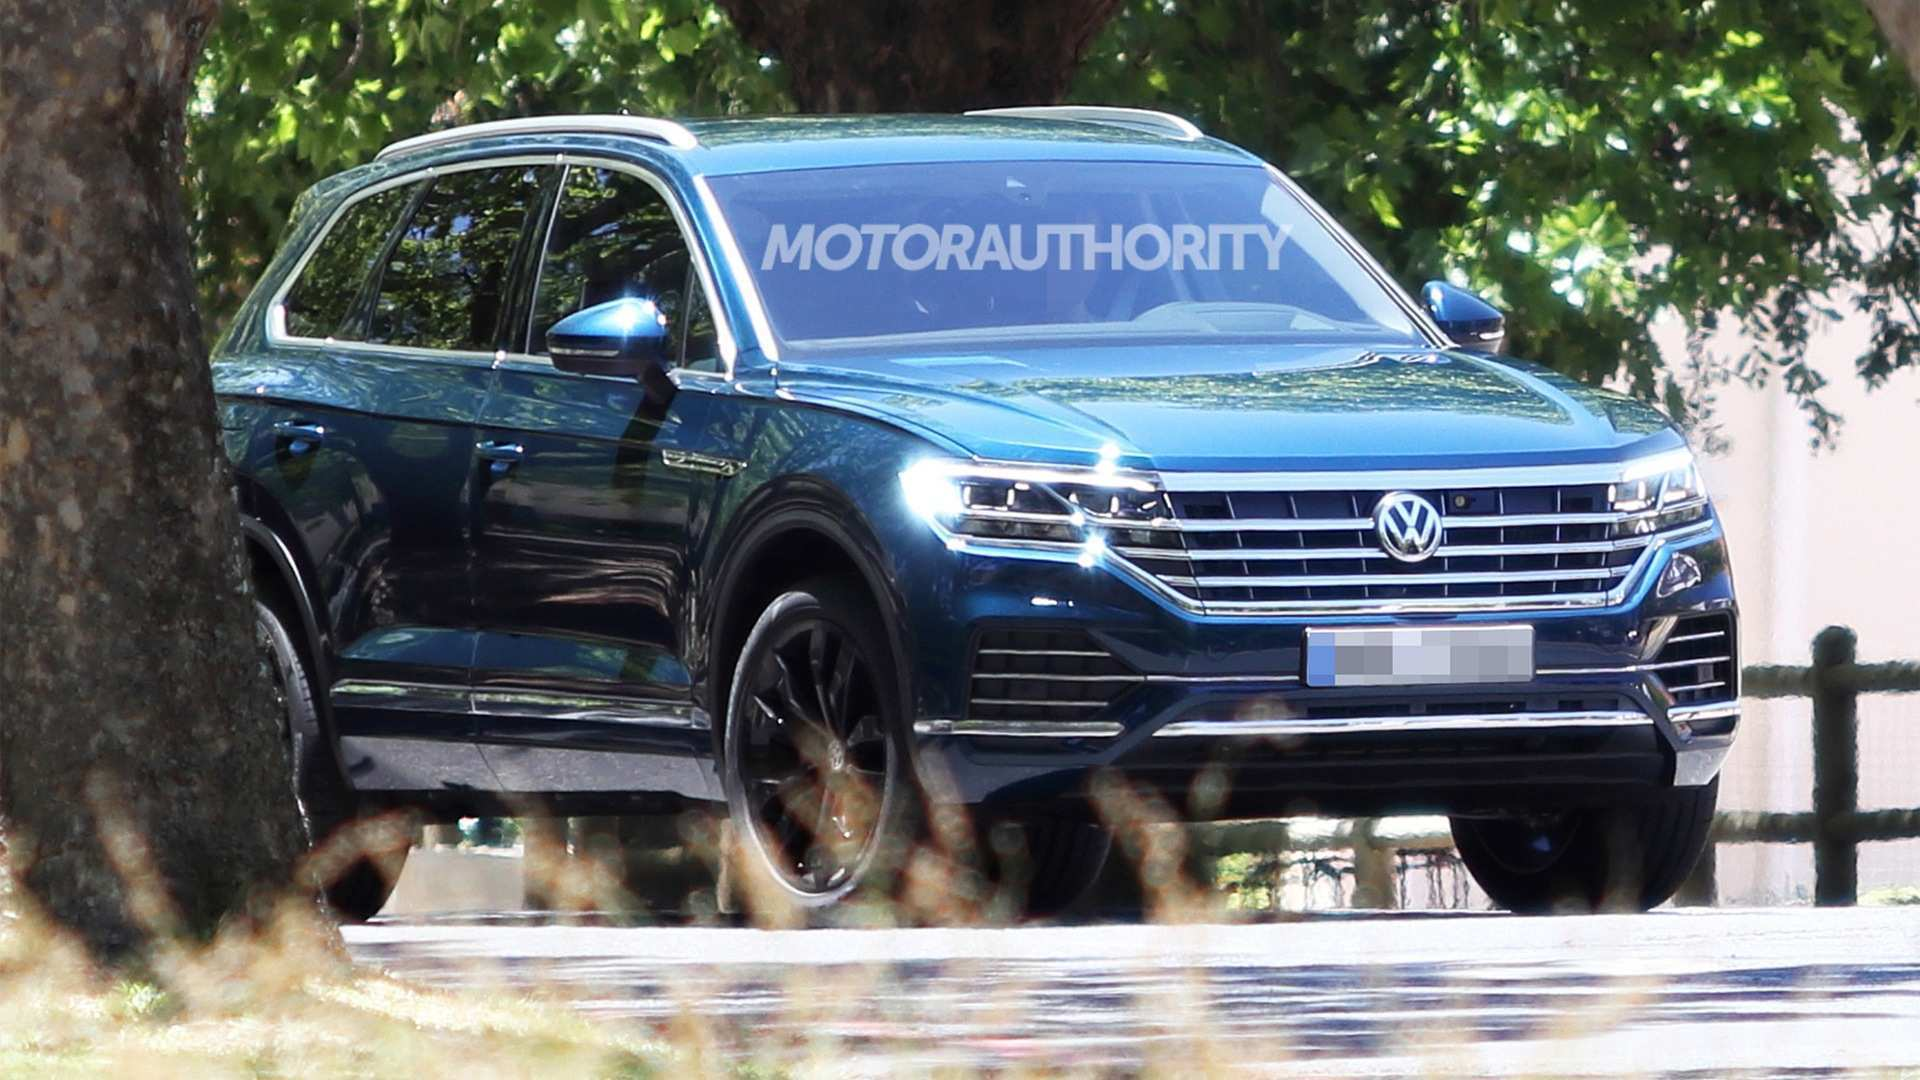 32 All New Volkswagen Touareg 2020 Dimensions Release Date with Volkswagen Touareg 2020 Dimensions